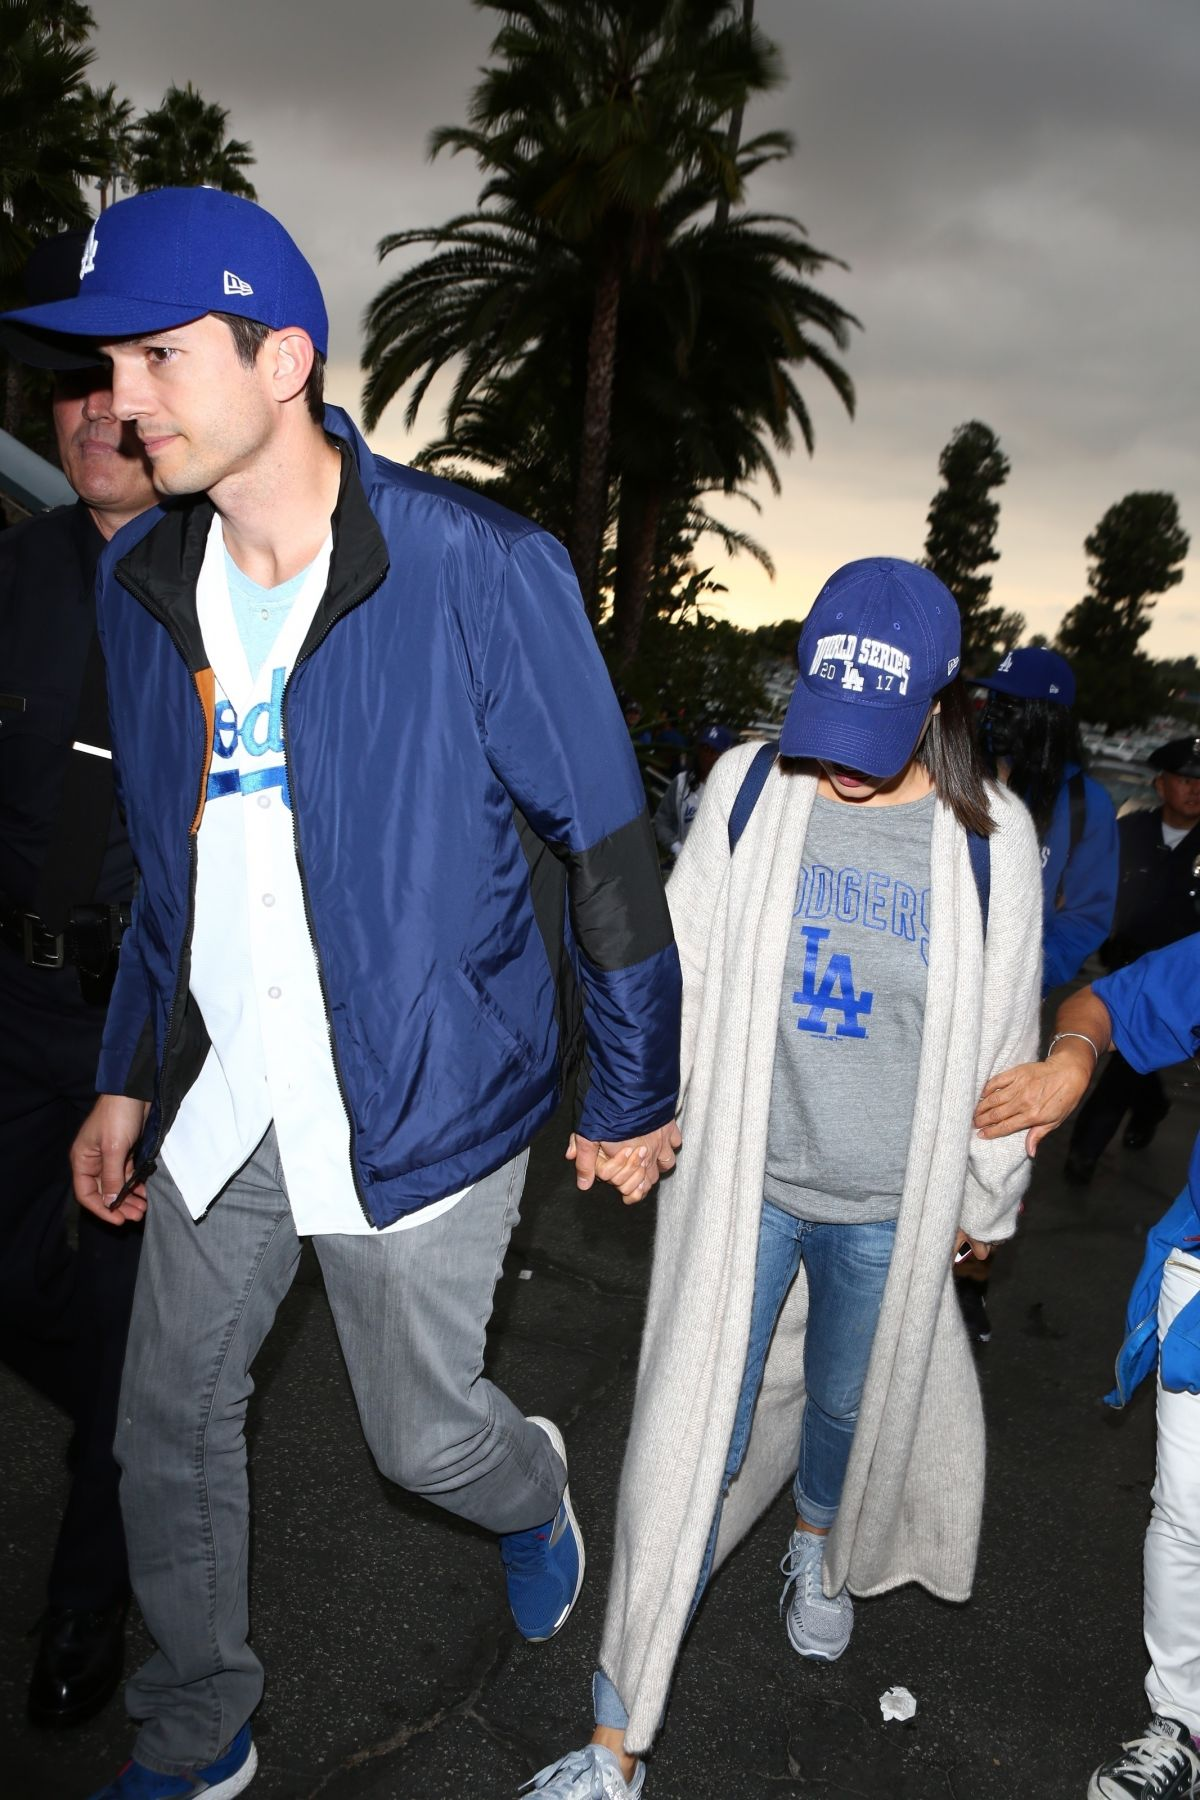 Mila Kunis Arrives for Game 6 of the World Series in Los Angeles